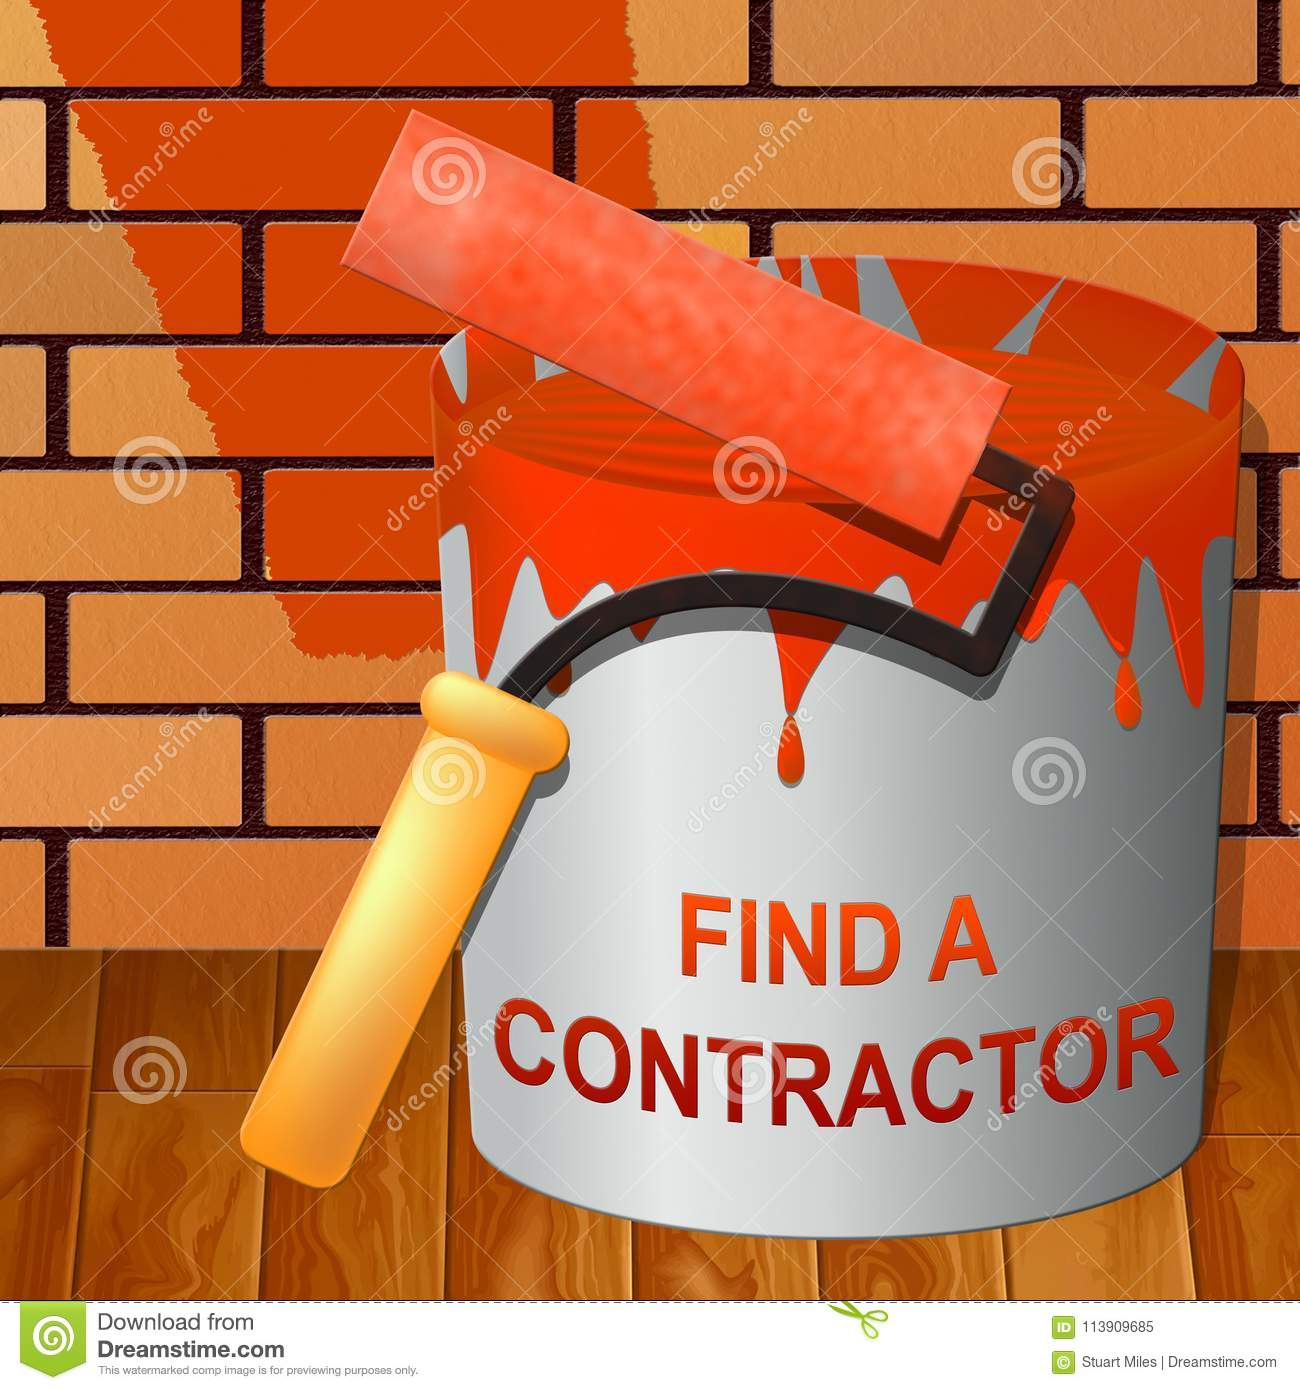 Find A Contractor >> Find A Contractor Showing Finding Builder 3d Illustration